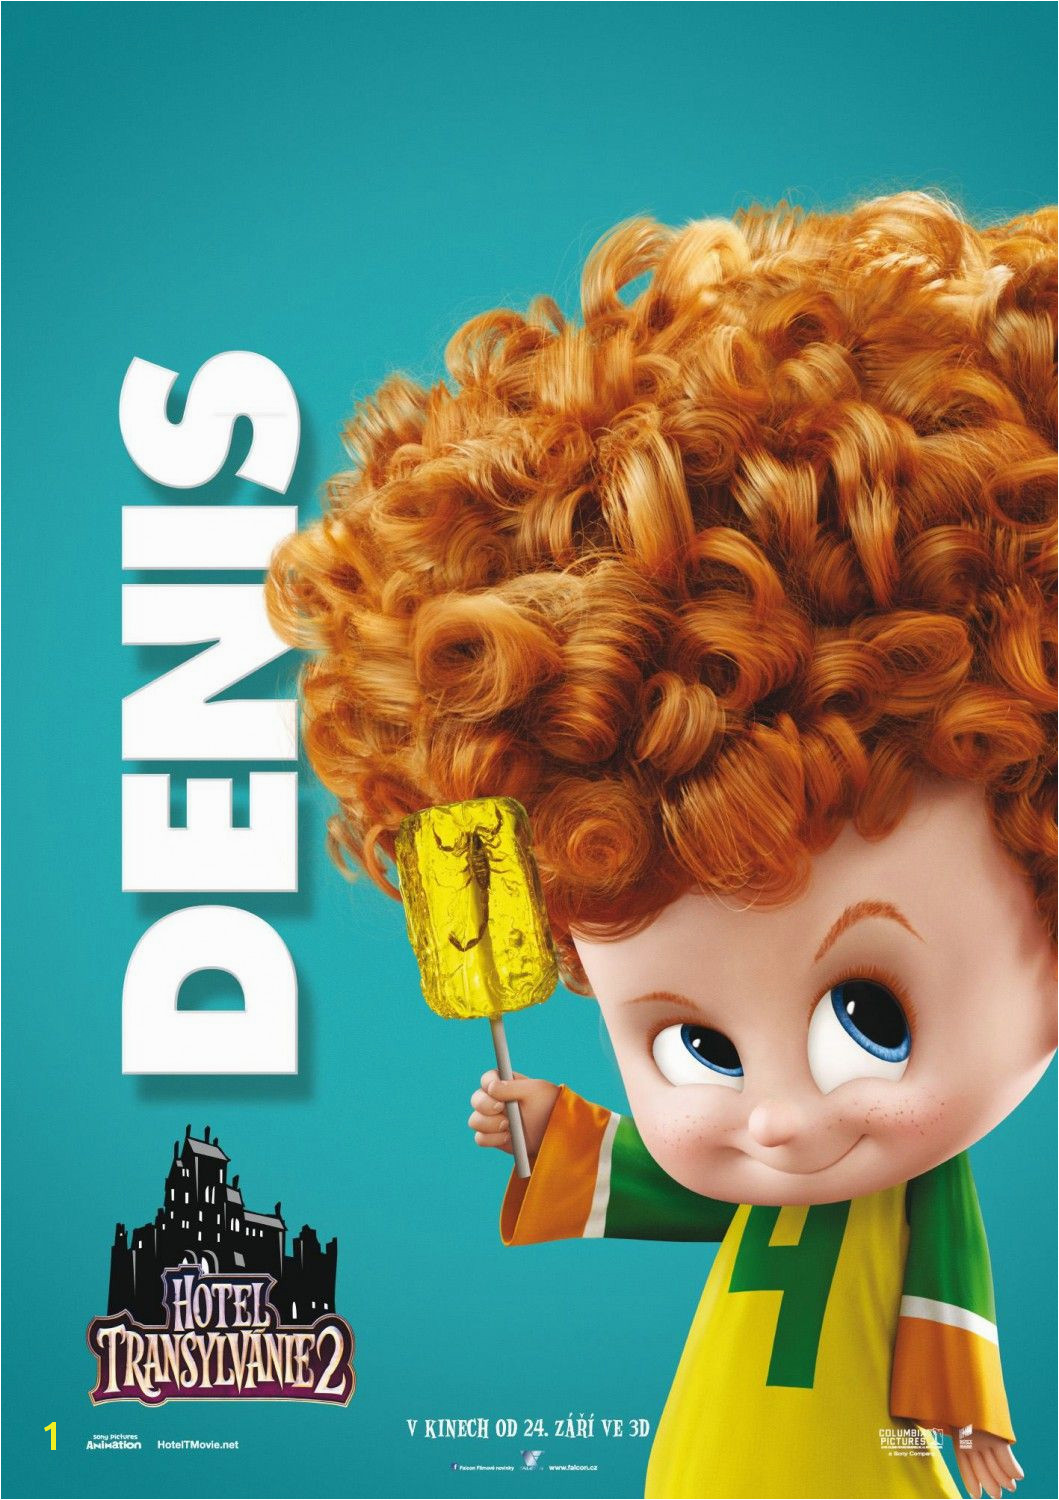 Hotel Transylvania 2 Coloring Pages Dennis Hotel Transylvania 2 Trailer Clips Music Video and Posters